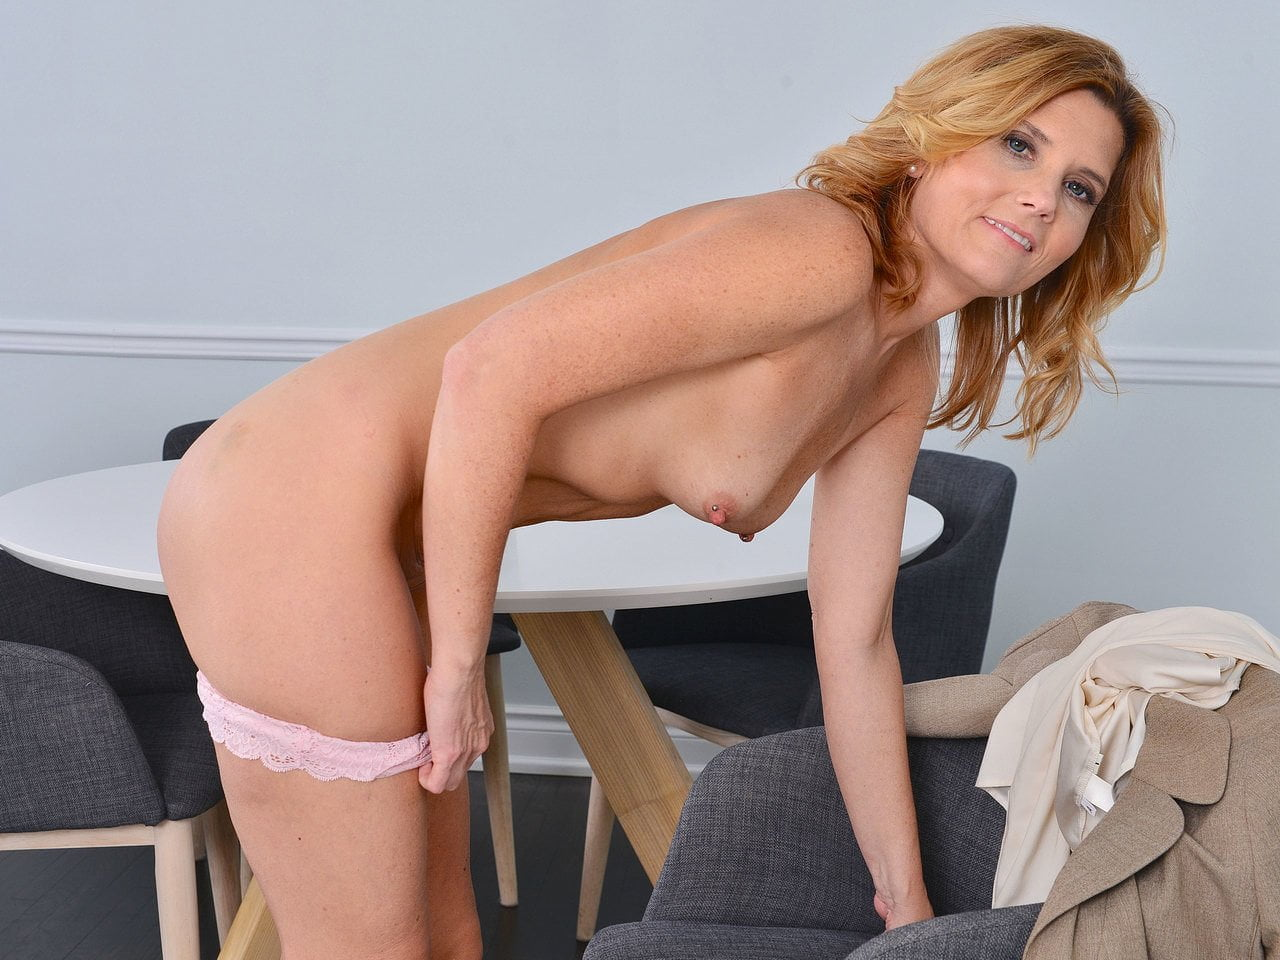 American milf alby daor needs to relax after a boring day - 2 part 2